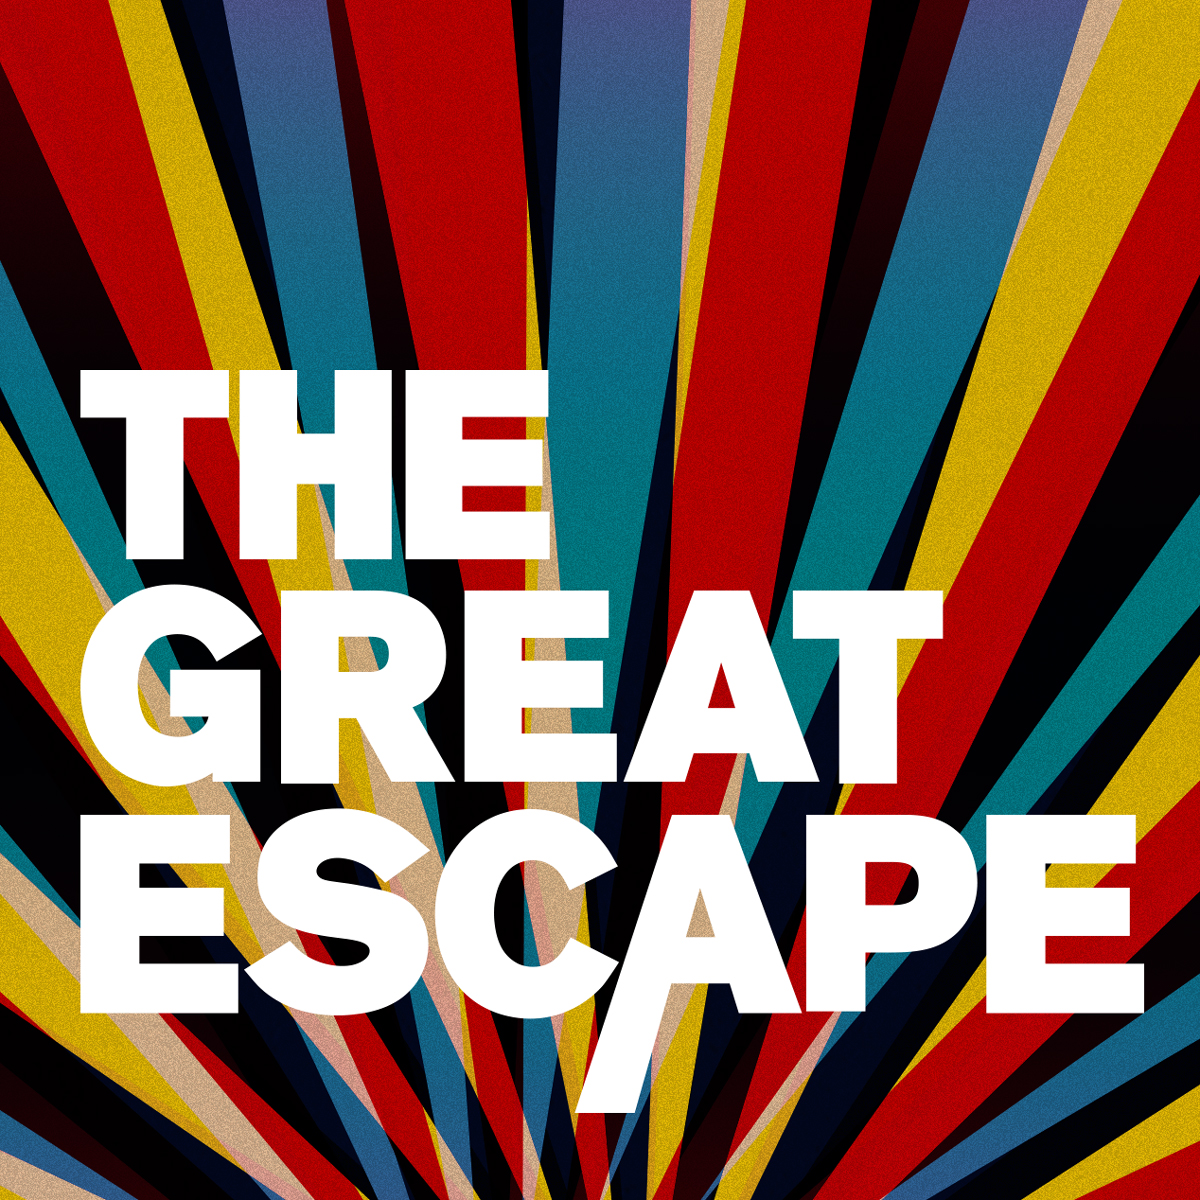 NEWS: 100 new acts announced for The Great Escape 2016